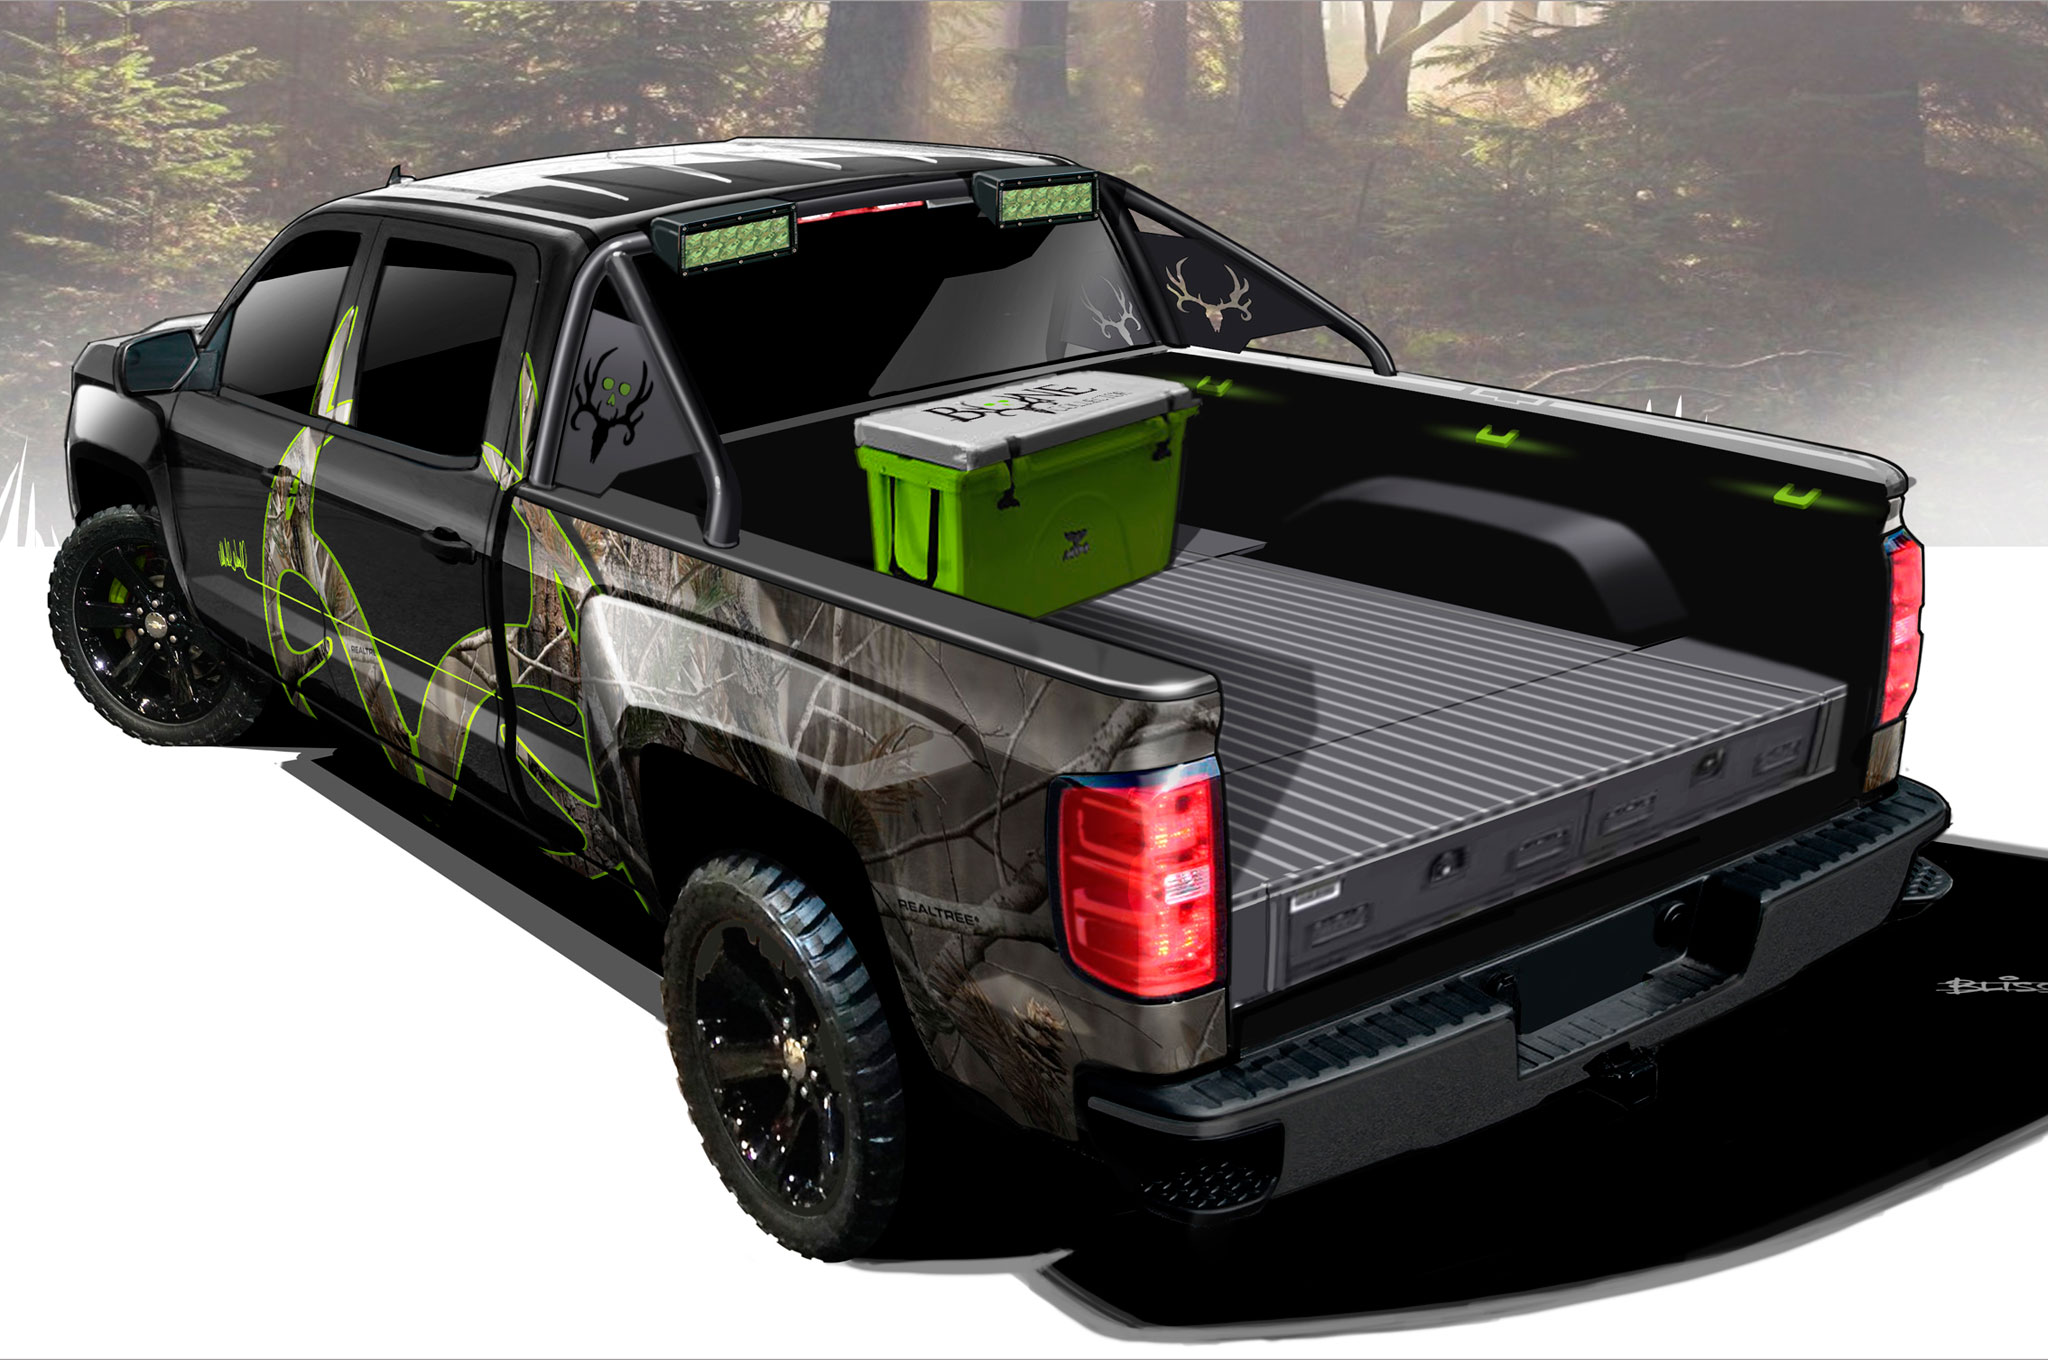 2016 Chevrolet Silverado Adds Hunting-Inspired Realtree ...